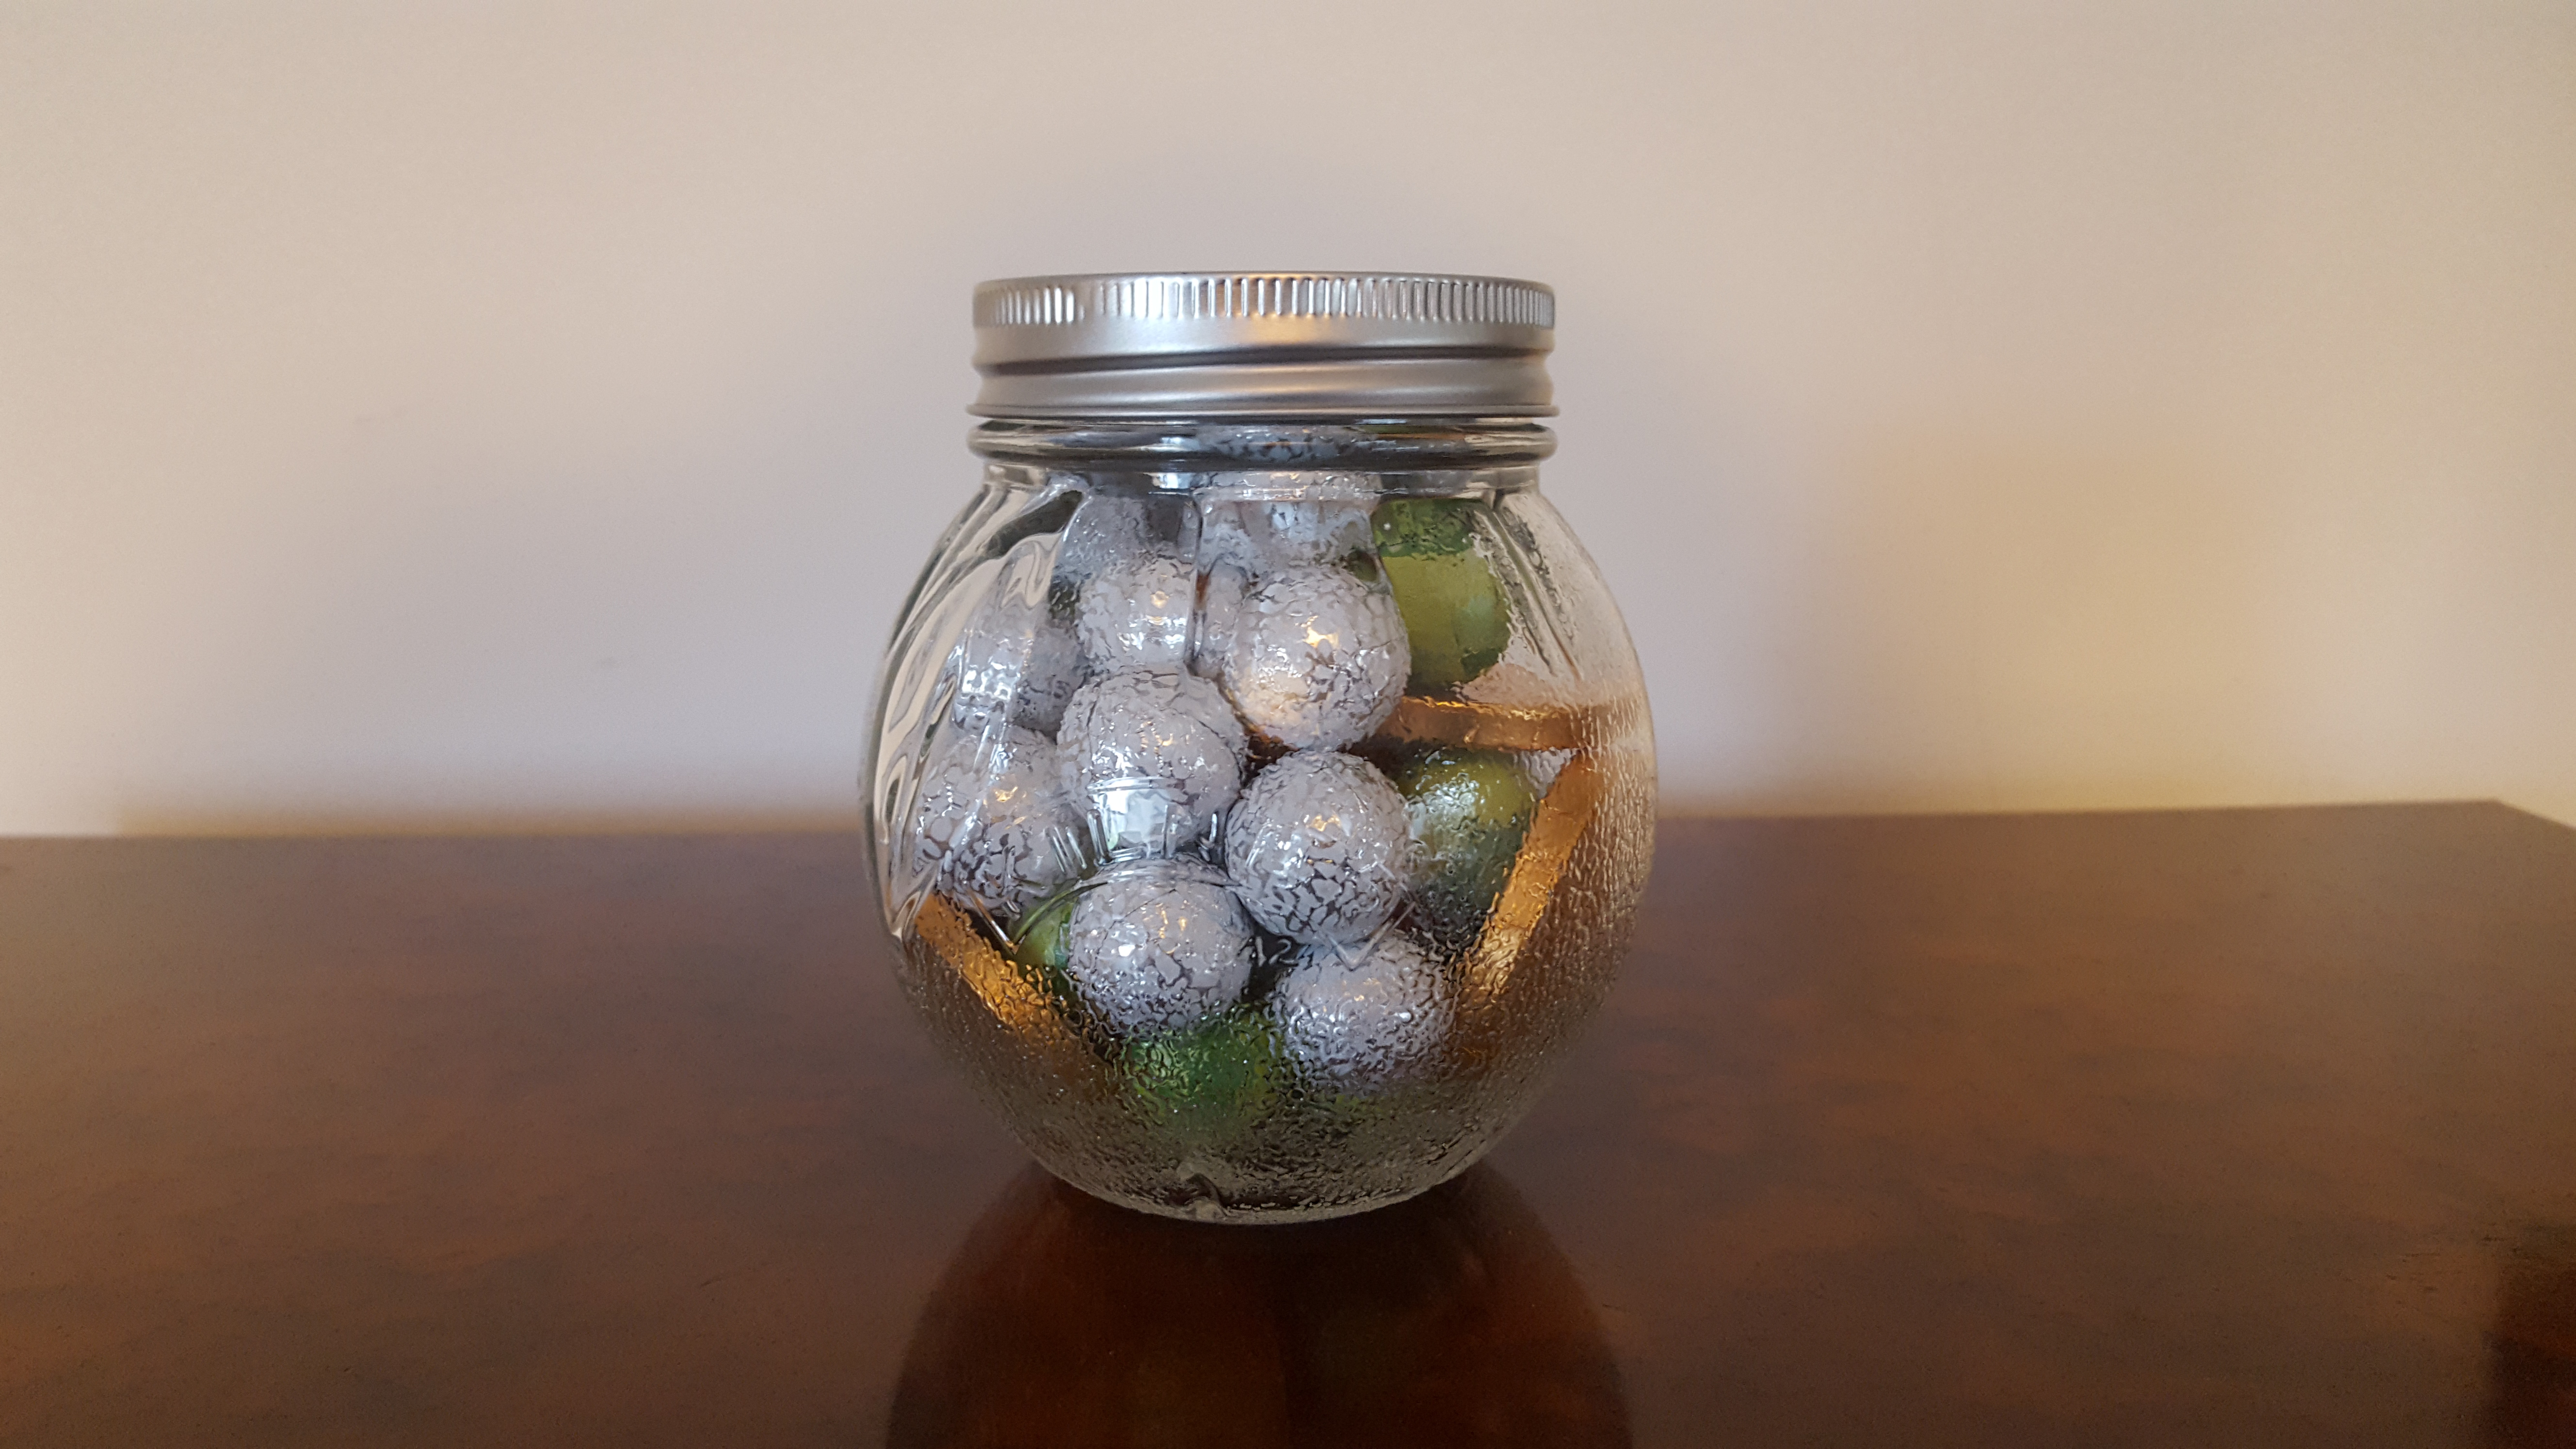 Picture of a jar full of sweets